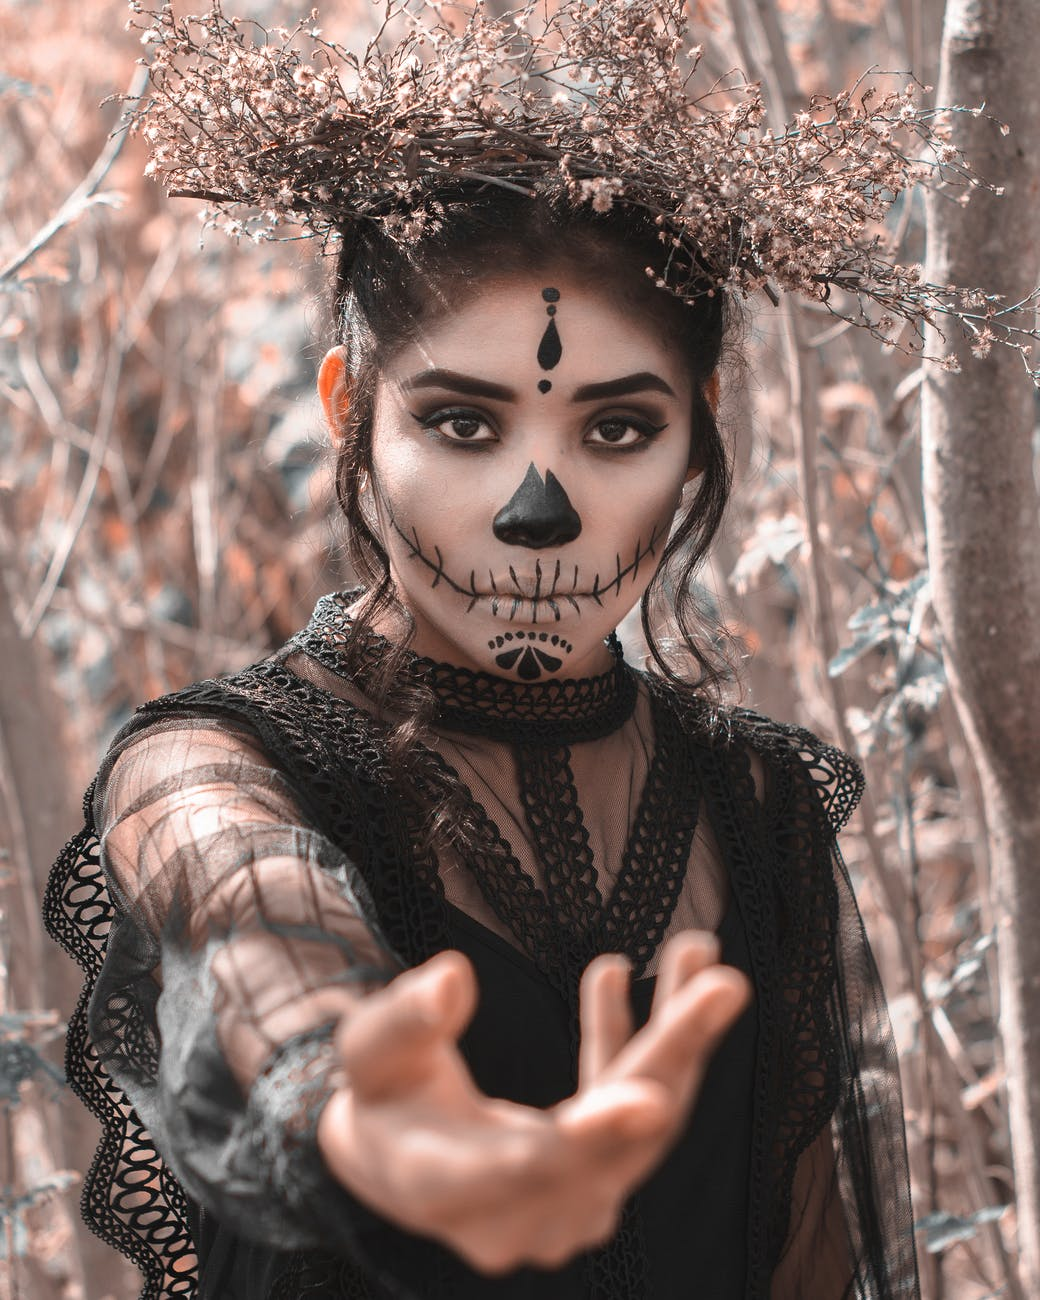 A woman with a face of make-up for Halloween, all dark and gloomy. Wearing a black lace dress and pointing to camera, and a flower headband.